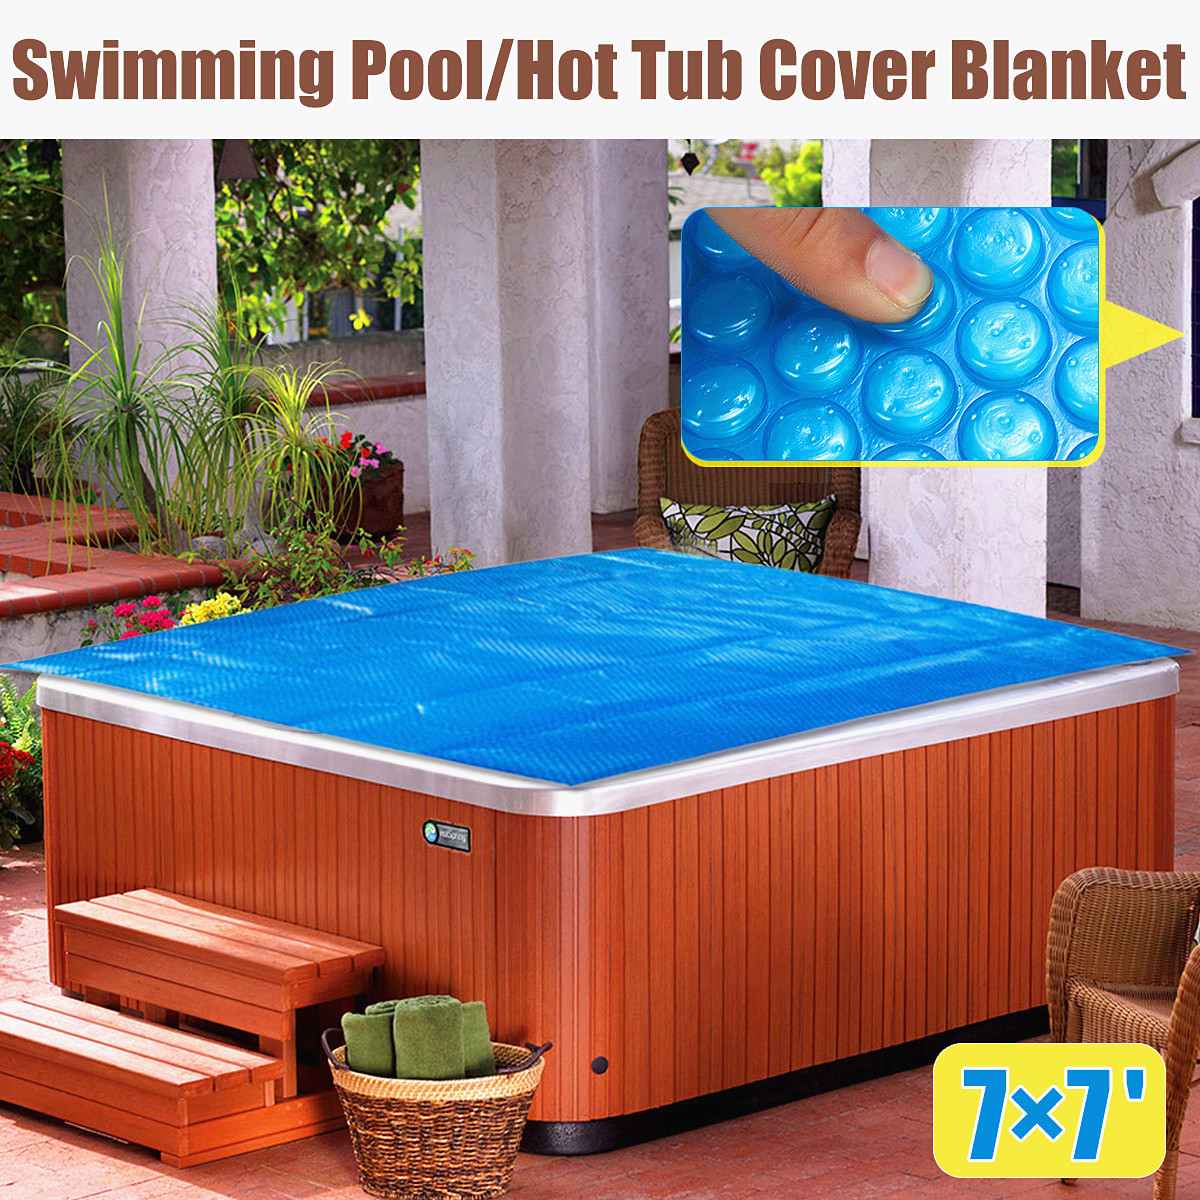 Jacuzzi Pool Covers Us 51 79 6 Off 210x210cm Square Family Pool Swimming Pool Hot Tub Cover Blanket Kid Adult Children Blue Garden Balcony Outdoor Play Pool Cover In